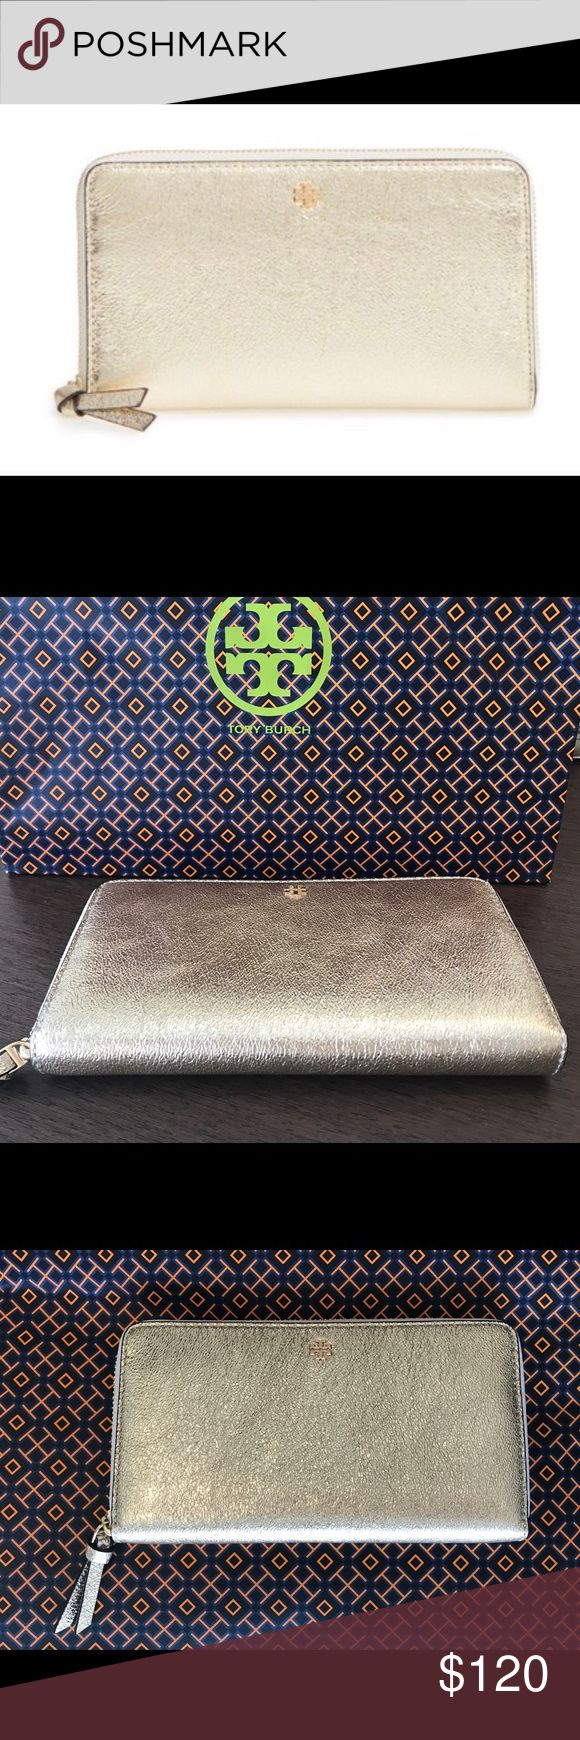 """Tory Burch Zip Continental Wallet Tory Burch crinkle metallic zip continental wallet Color is spark gold 7.5"""" x 4.25"""" New with tag Comes with Tory Burch bag and gift receipt Tory Burch Bags Wallets"""